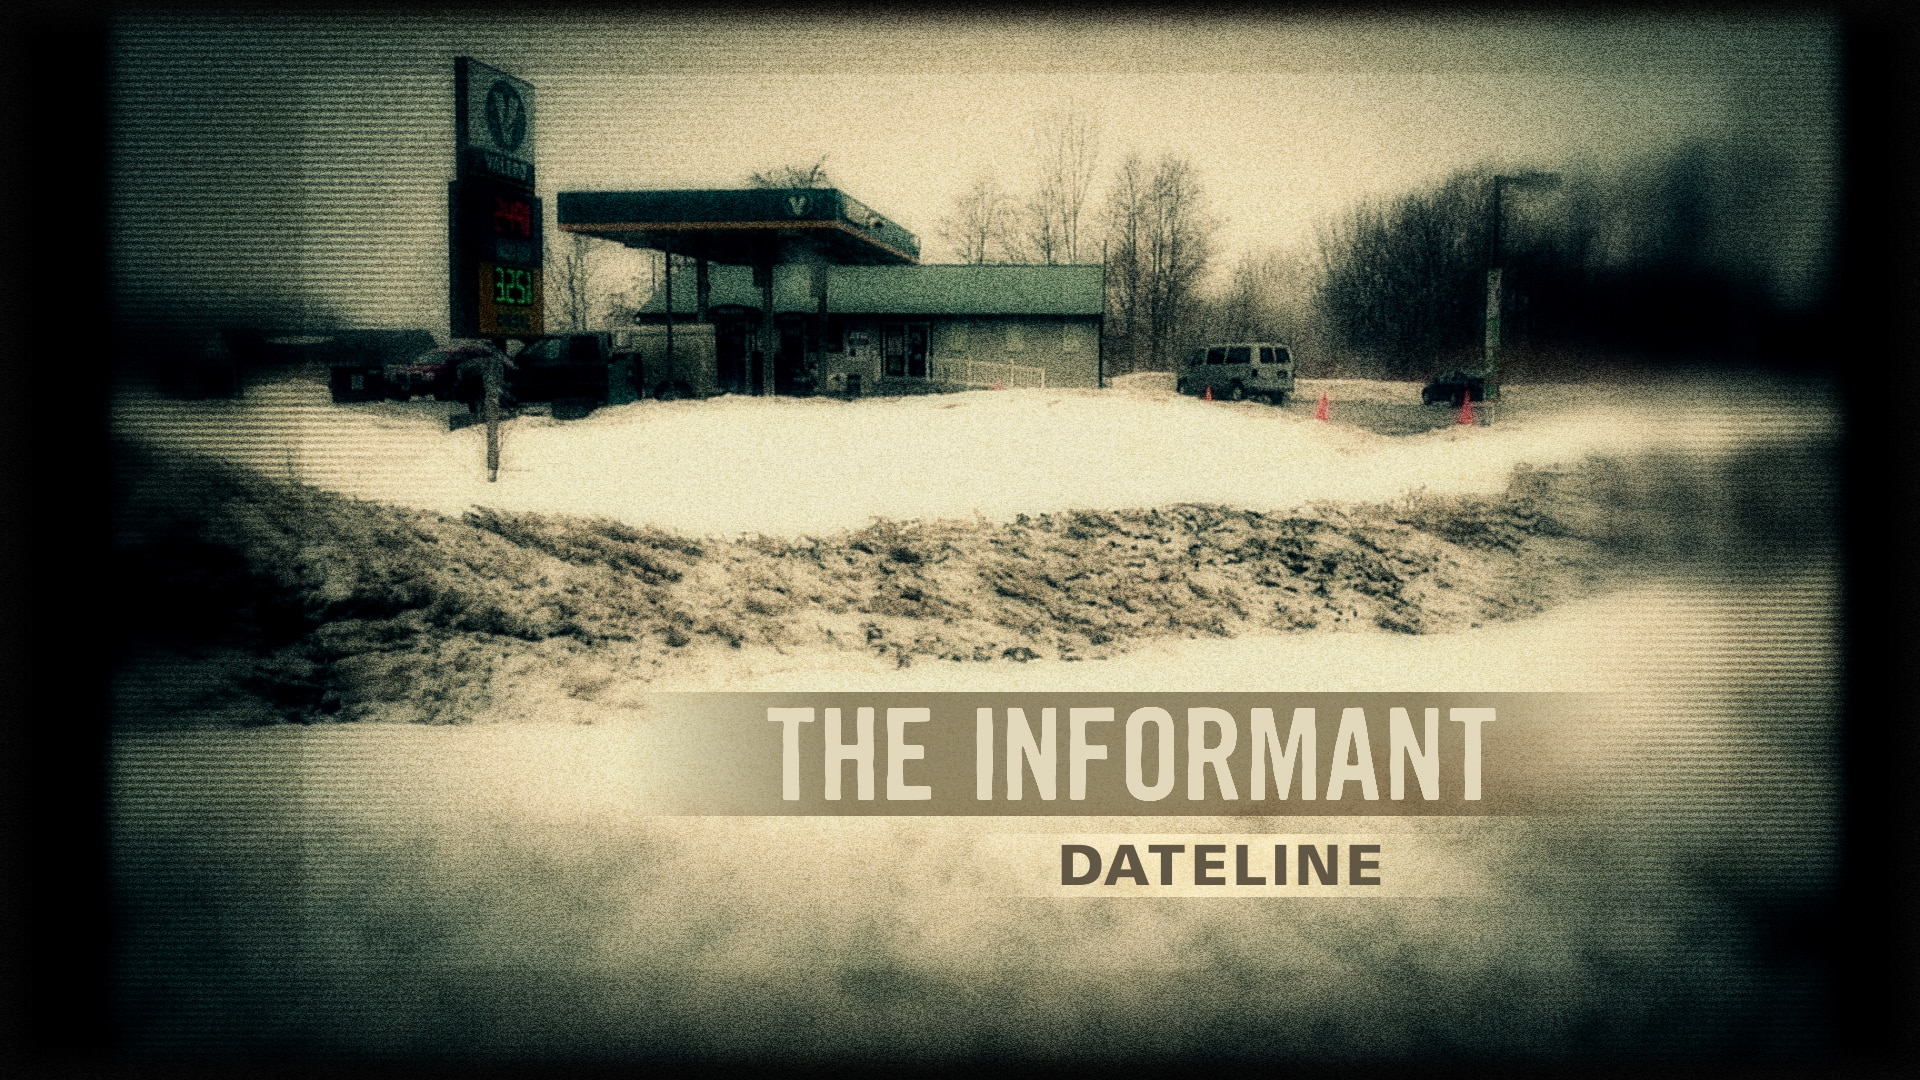 Watch Dateline Episode: The Informant